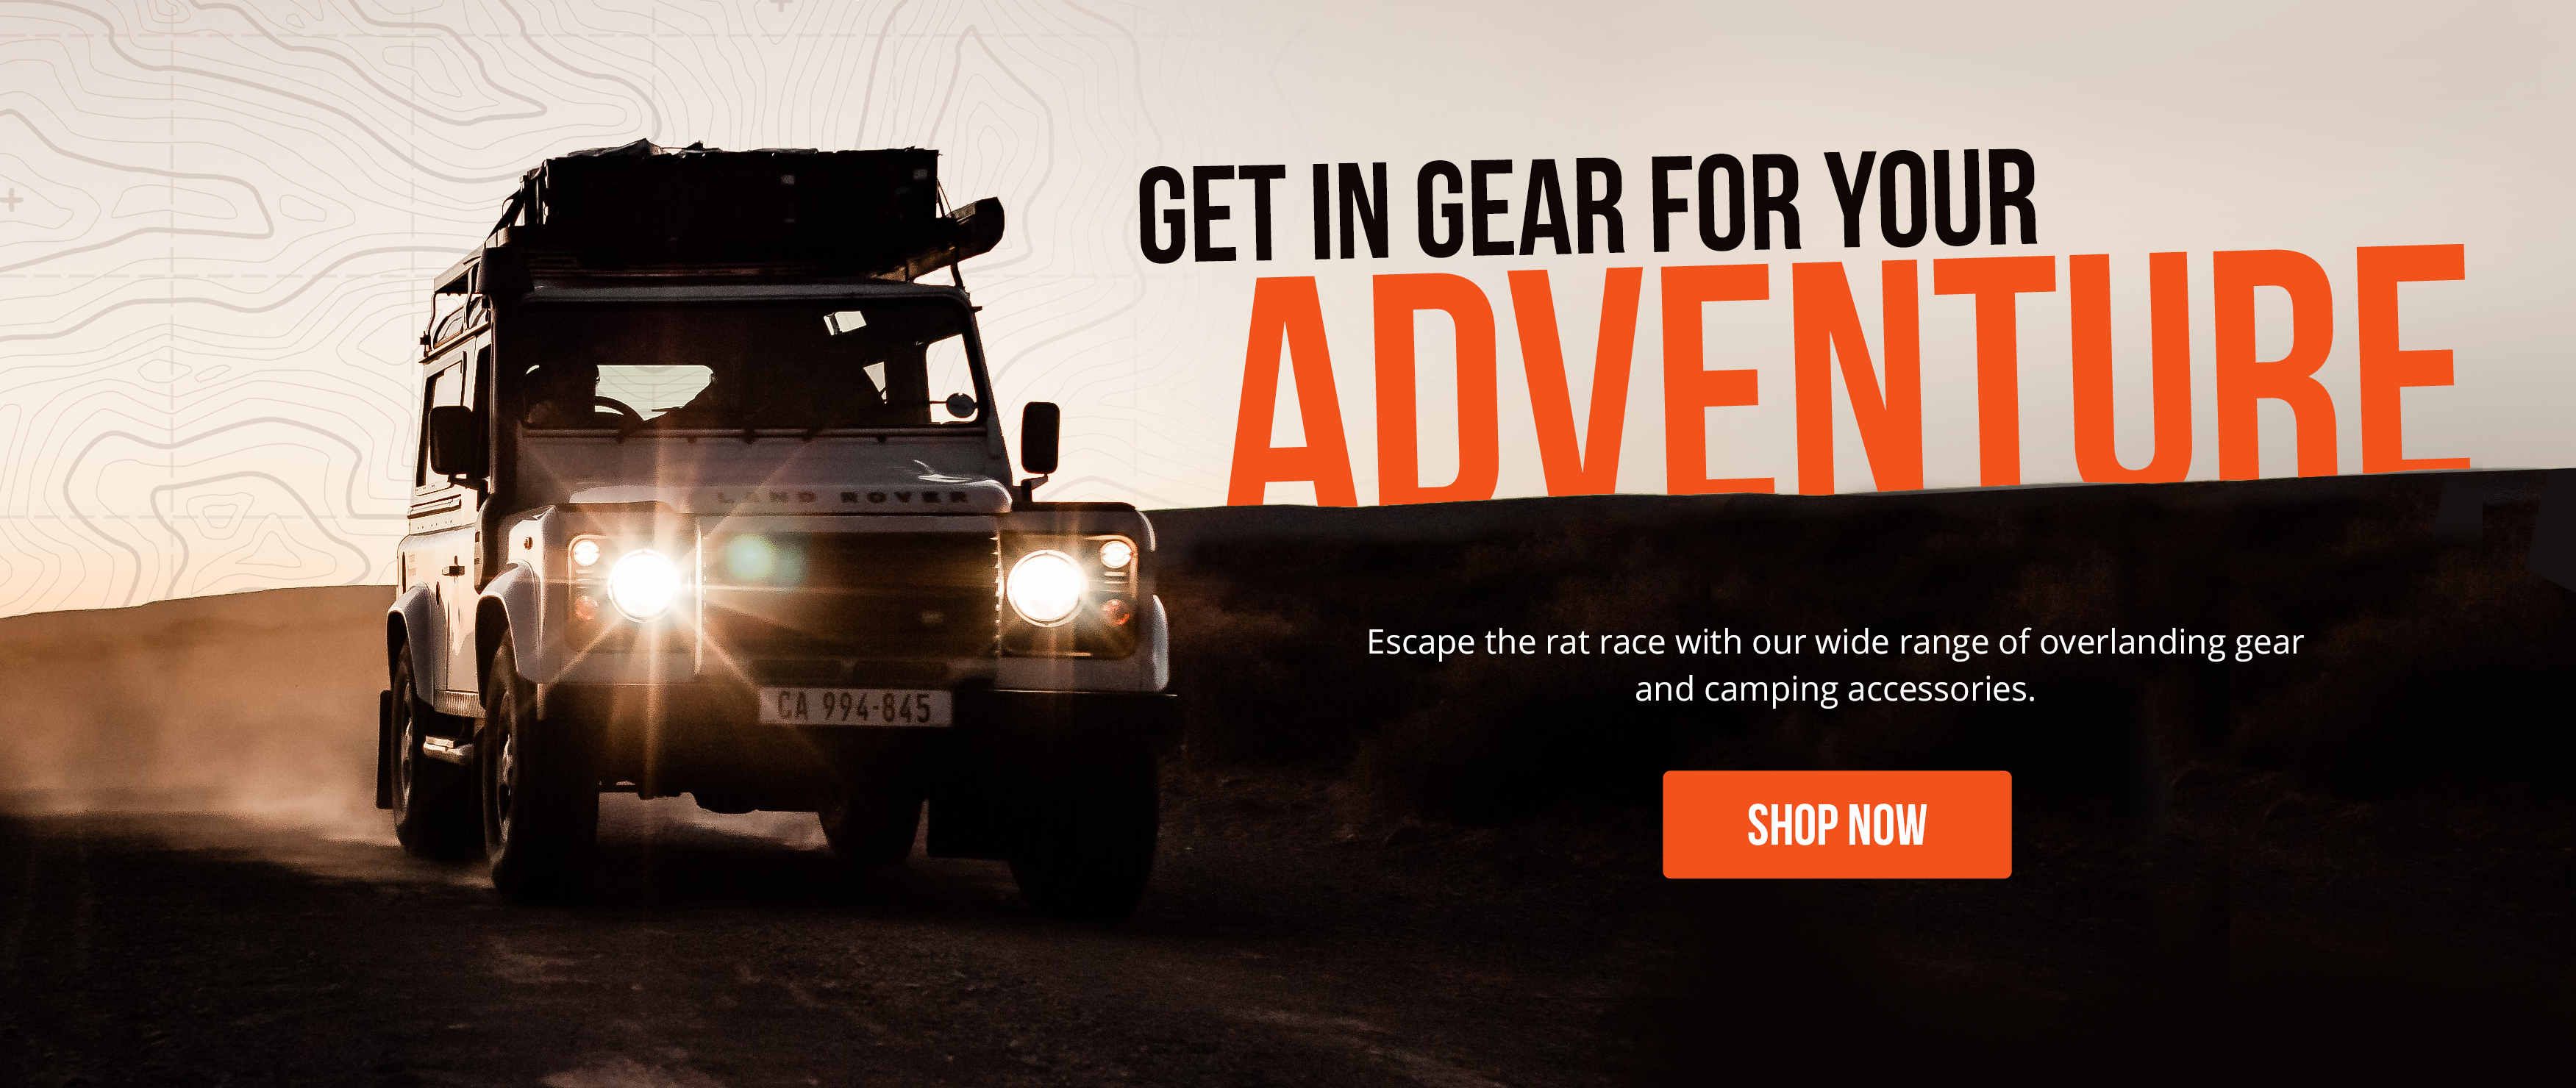 Get in gear for your adventure.